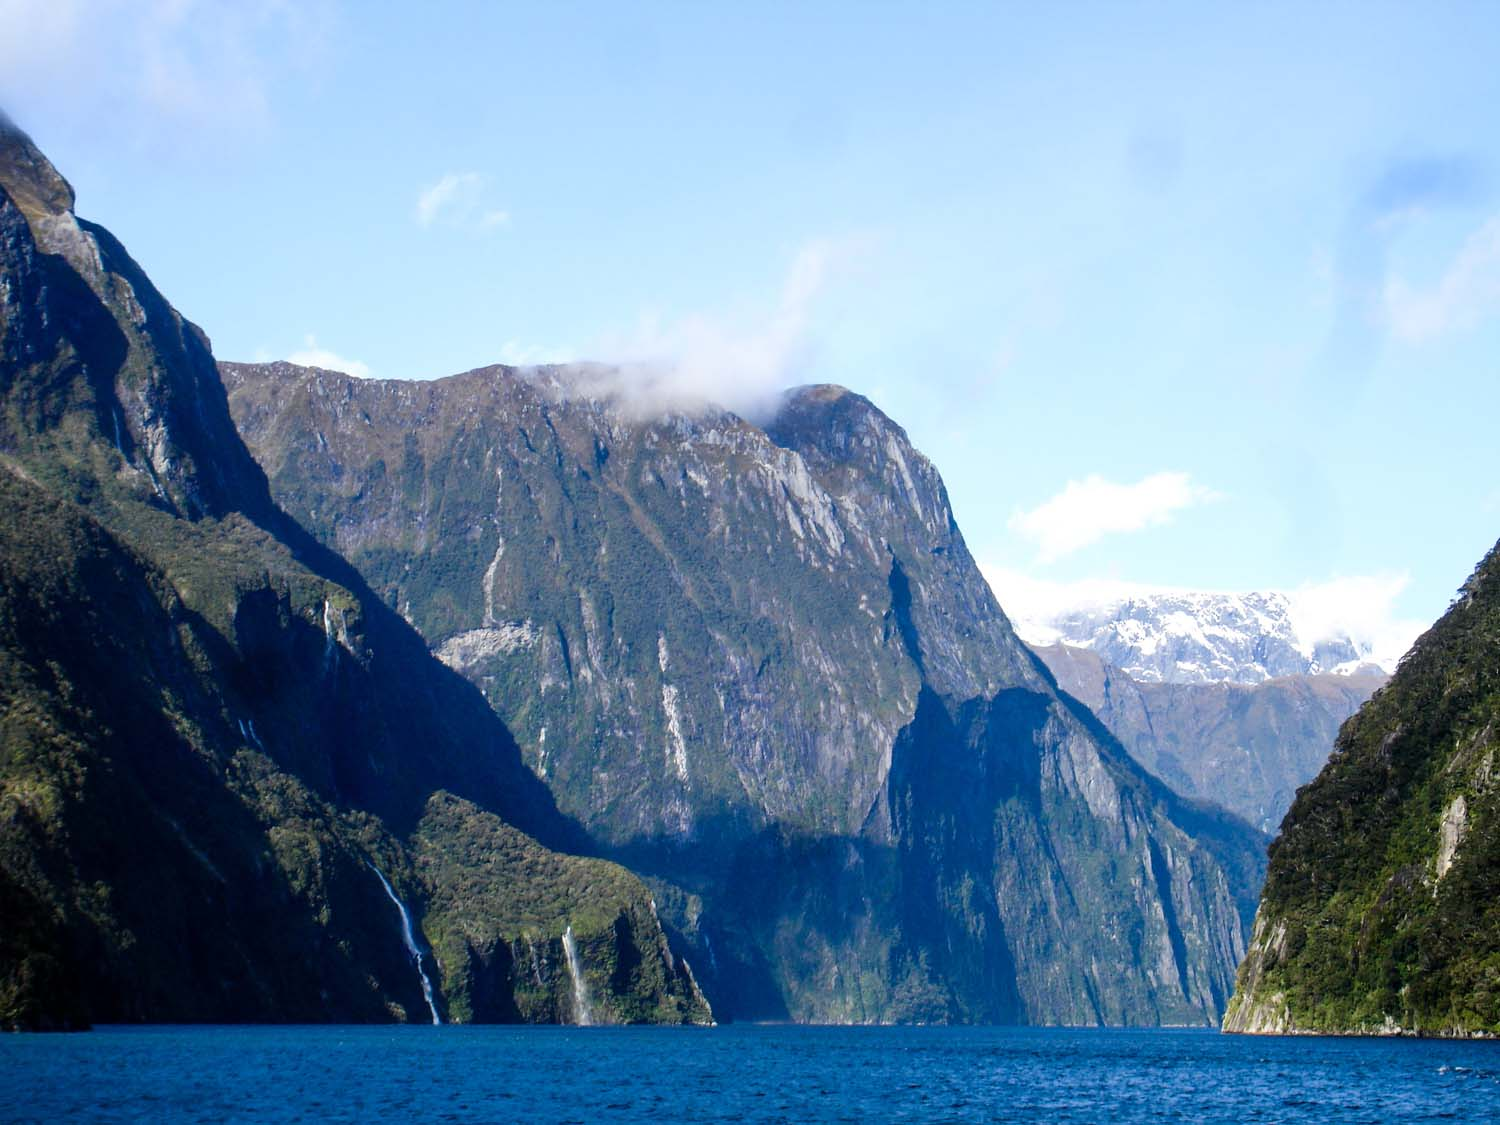 The Milford Sound fiord